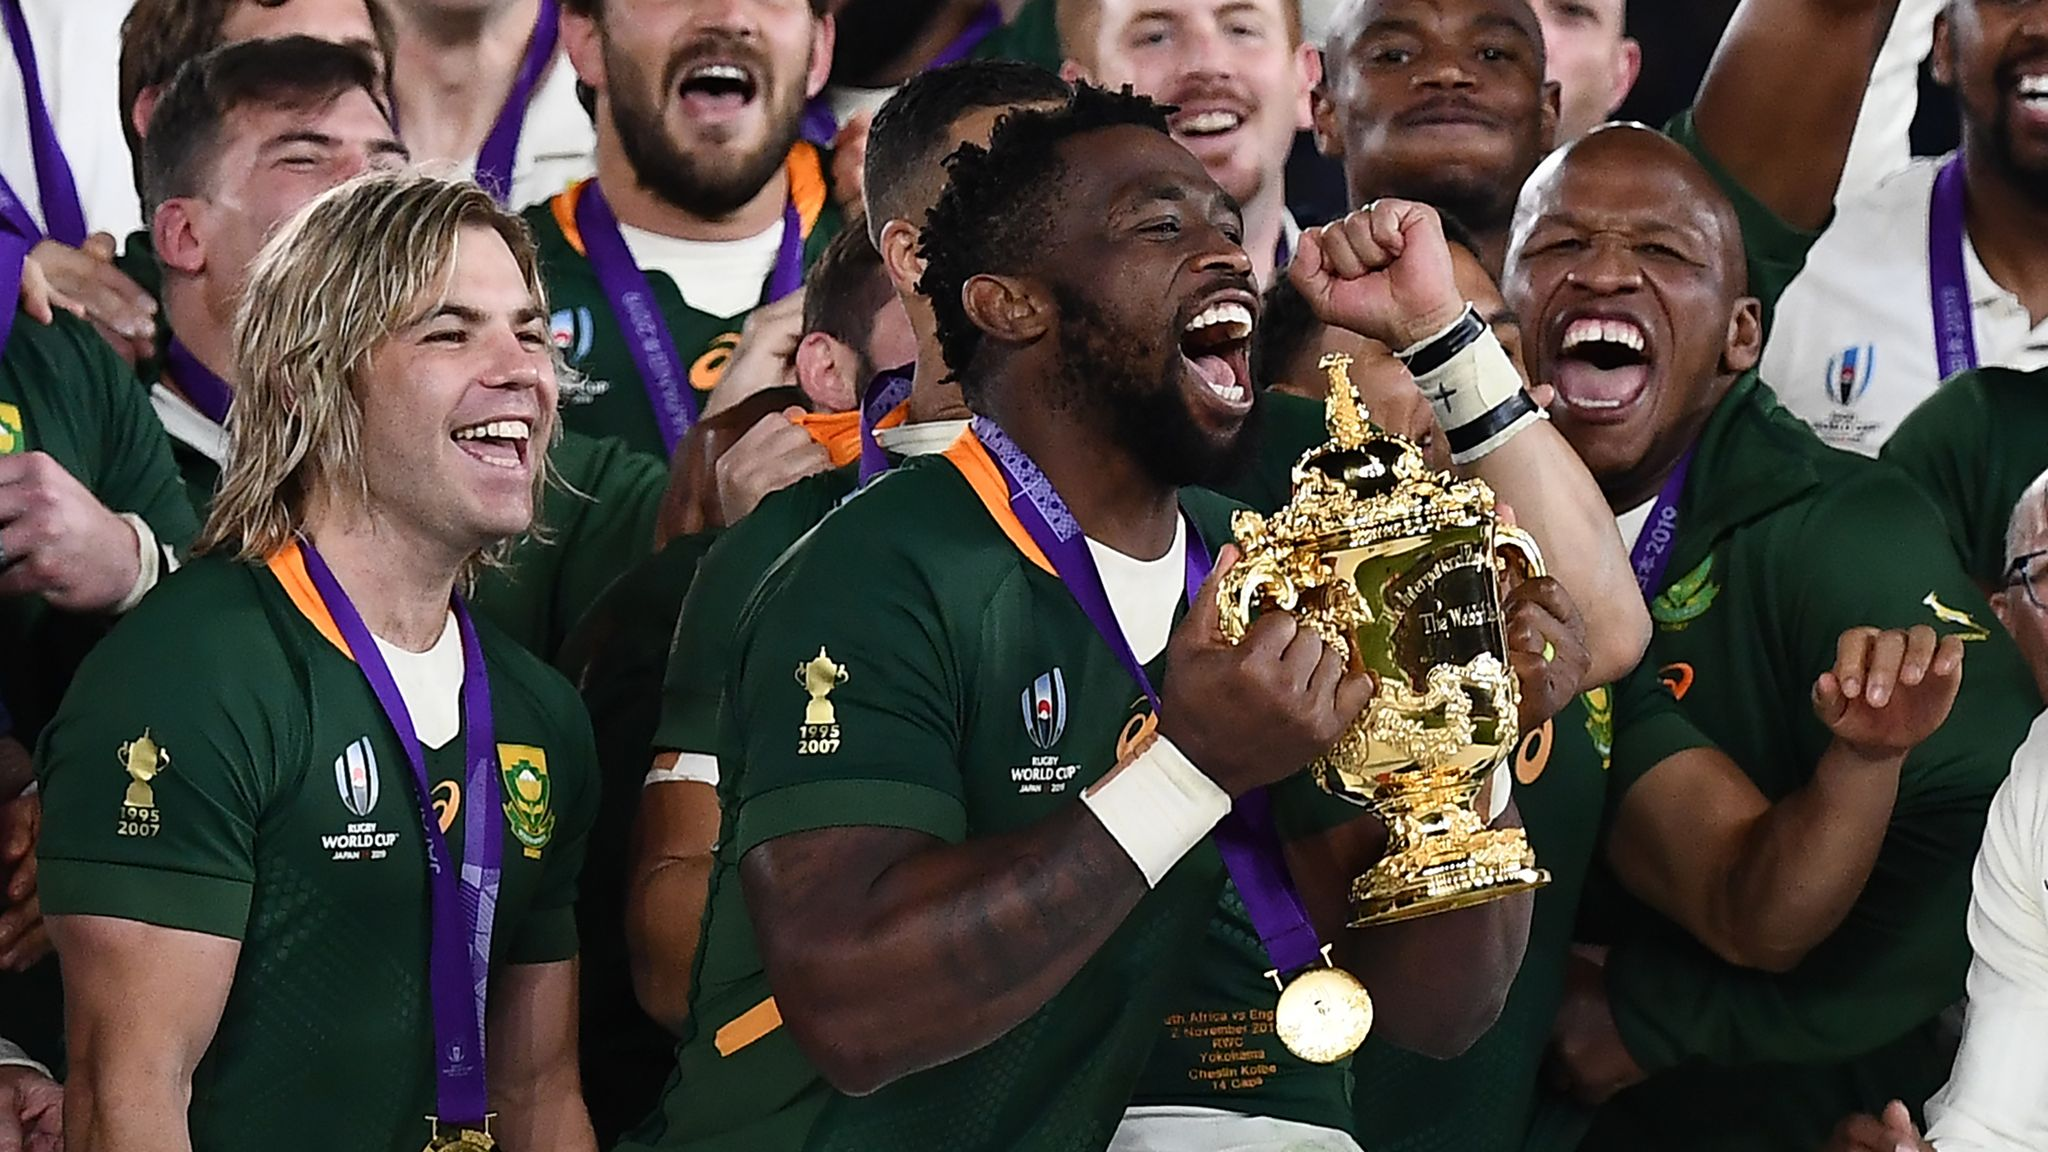 Siya Kolisi: The first black man to lead South Africa to Rugby World Cup glory